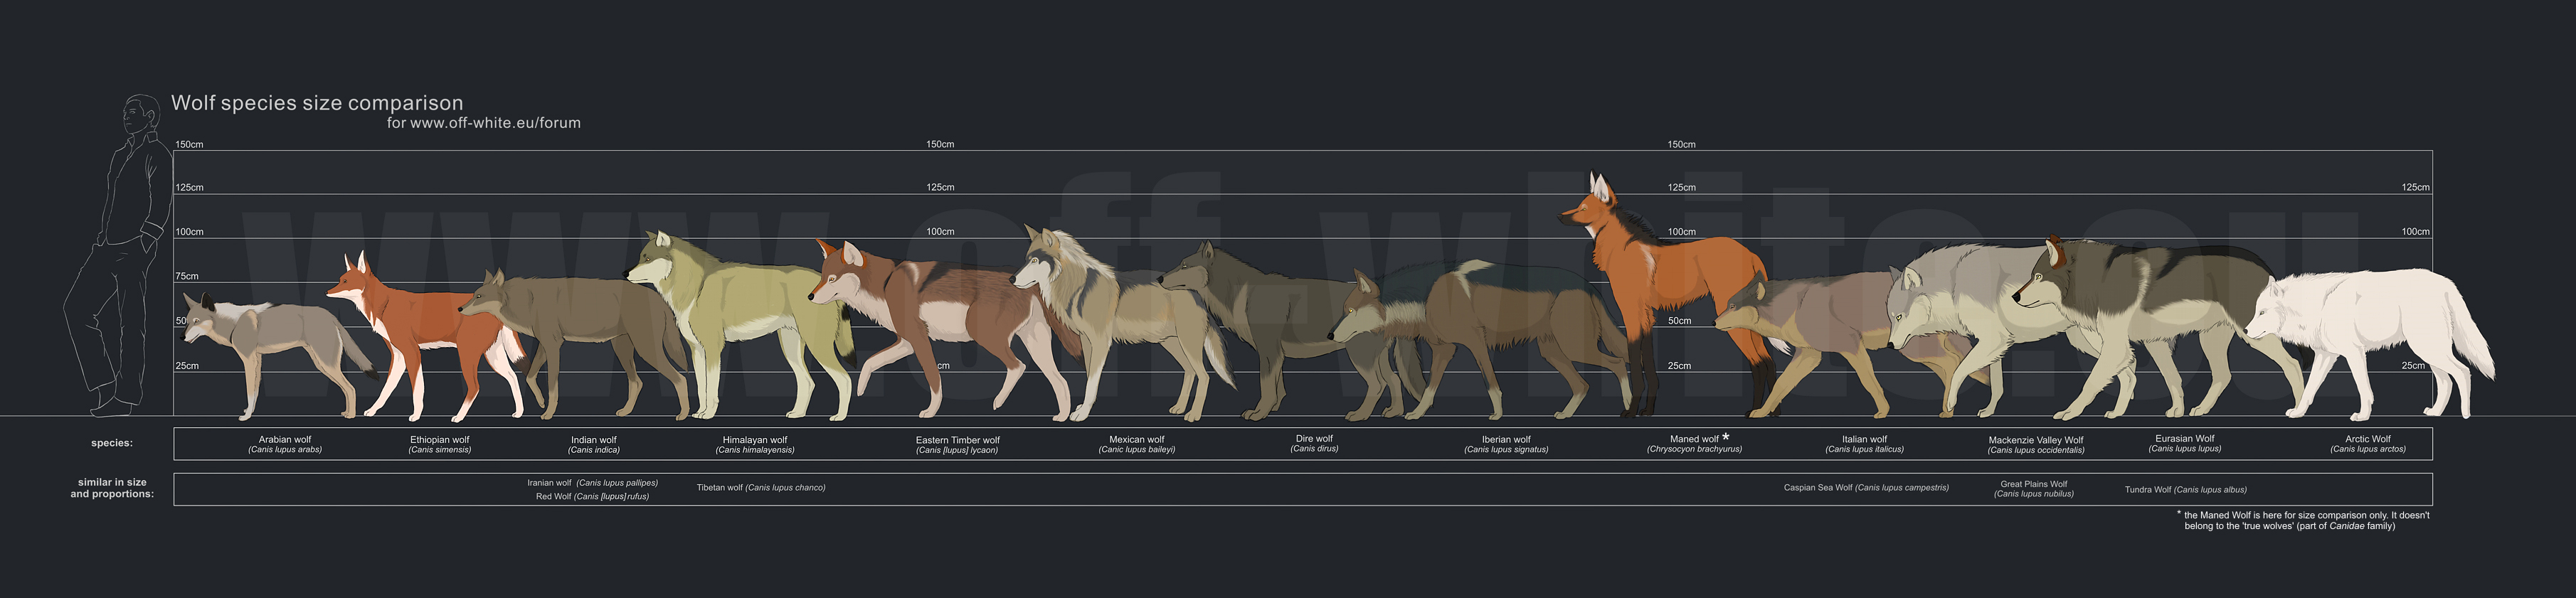 wolf_species_size_comparison_by_tanathe